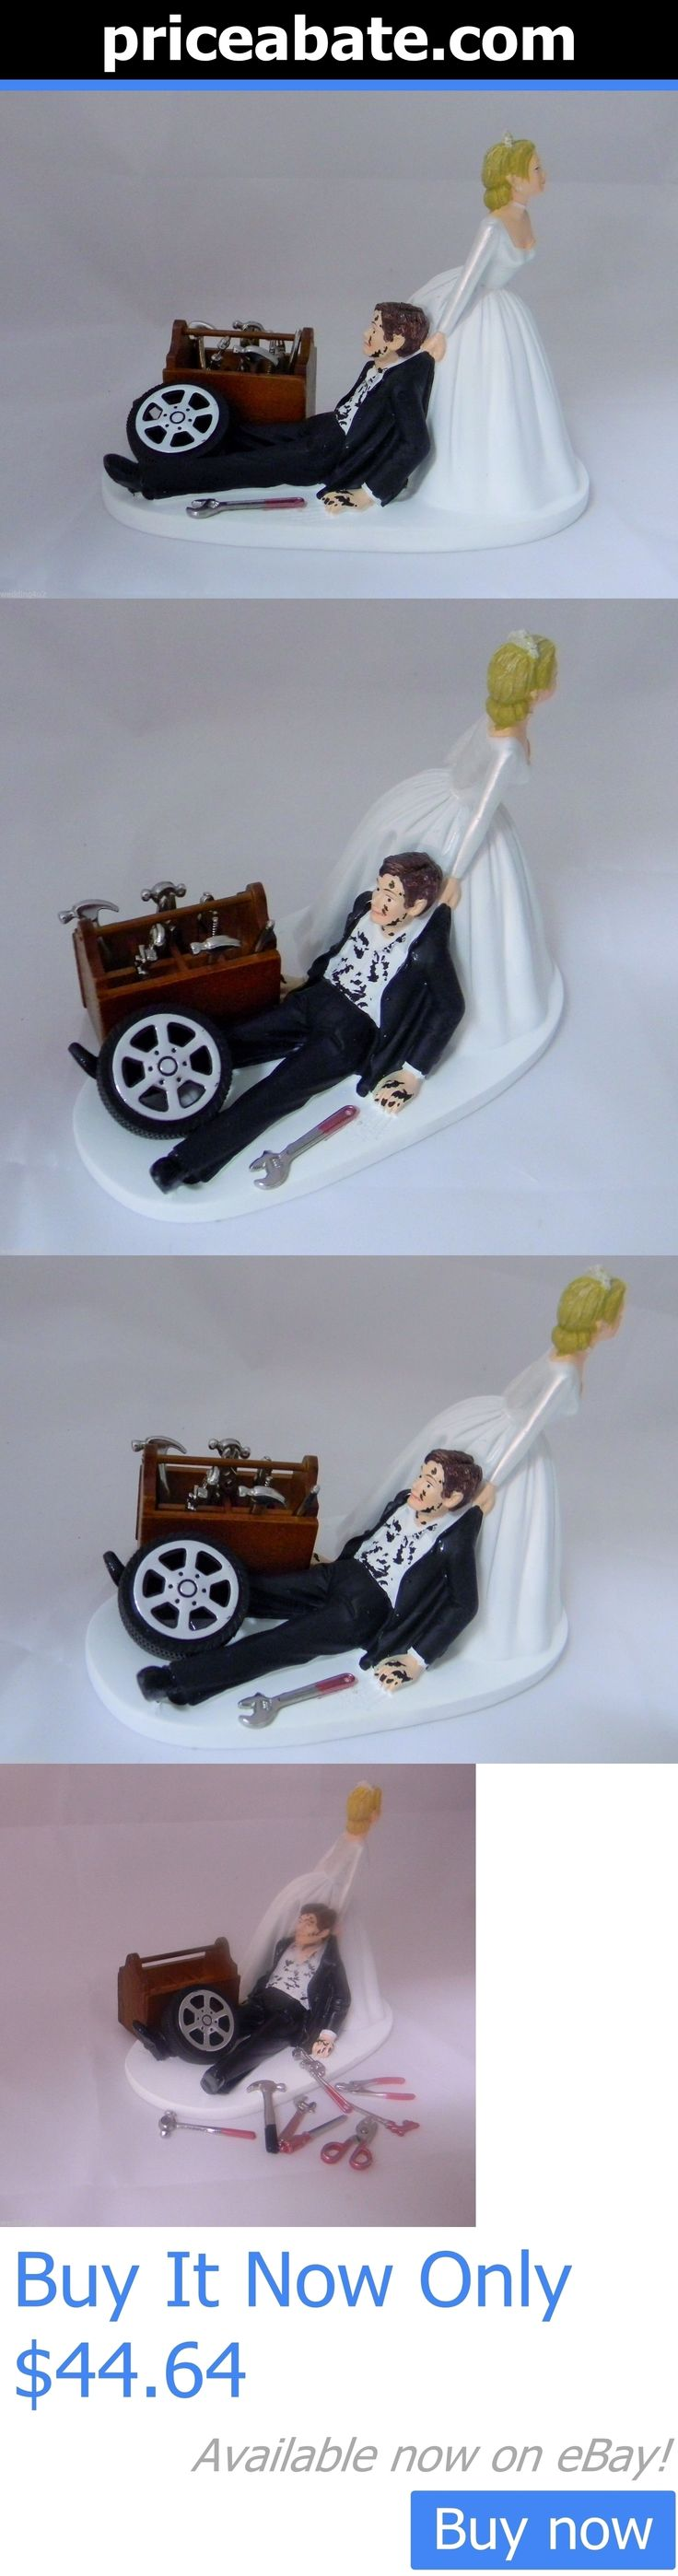 Wedding Cakes Toppers: Wedding Reception Race Car Truck Mechanic Tools Grease Cake Topper Shop Garage BUY IT NOW ONLY: $44.64 #priceabateWeddingCakesToppers OR #priceabate